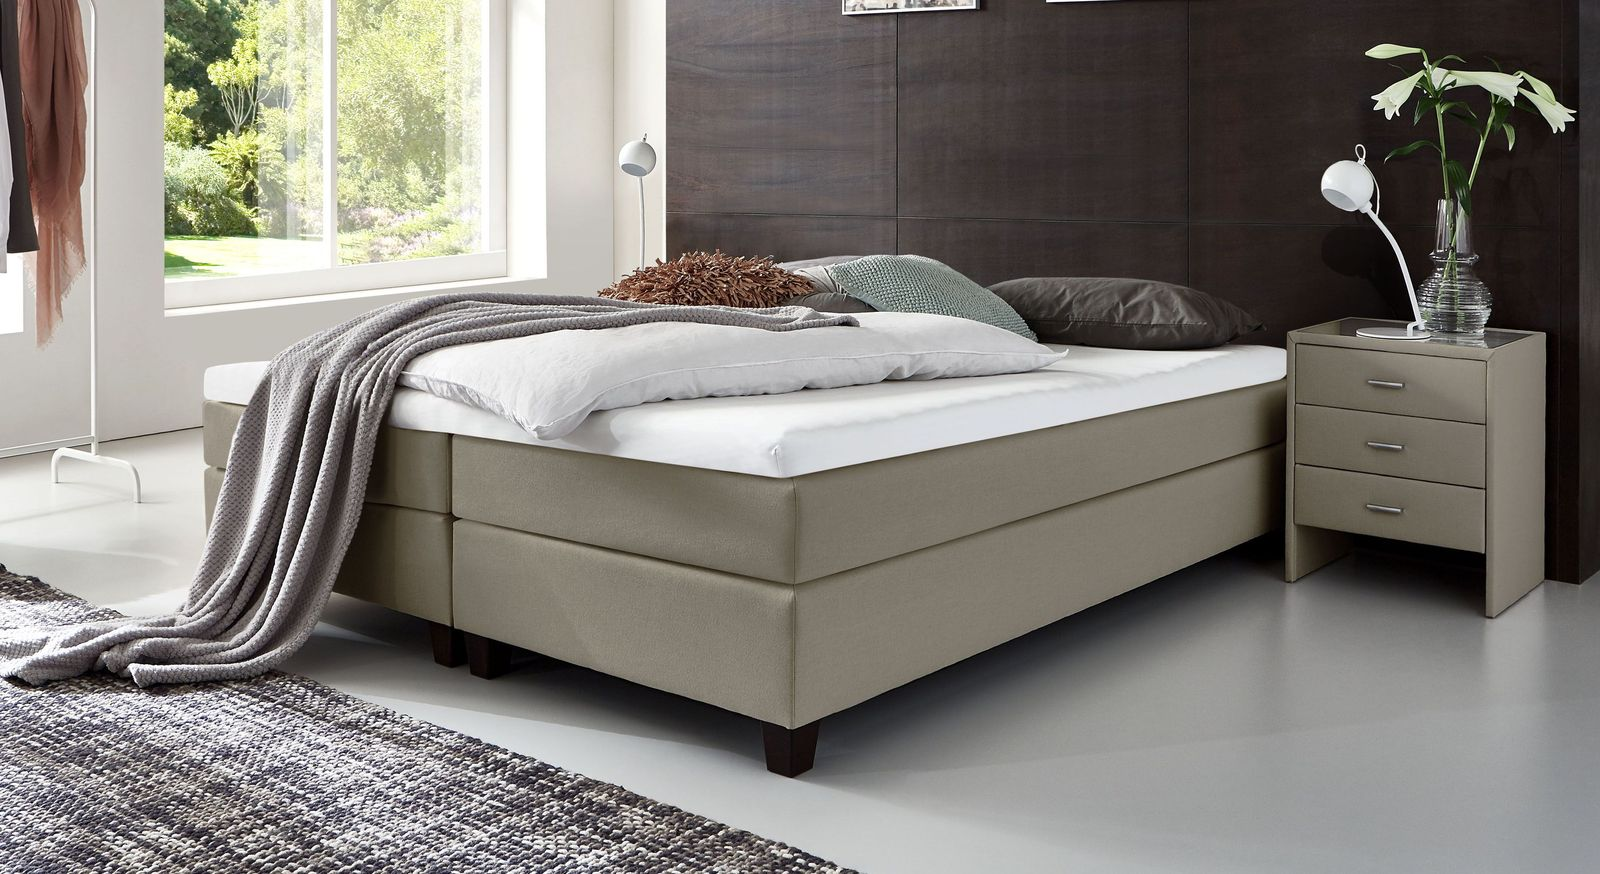 Boxspringbett Ohne Kopfteil 160x200 Holzfusse Luciano